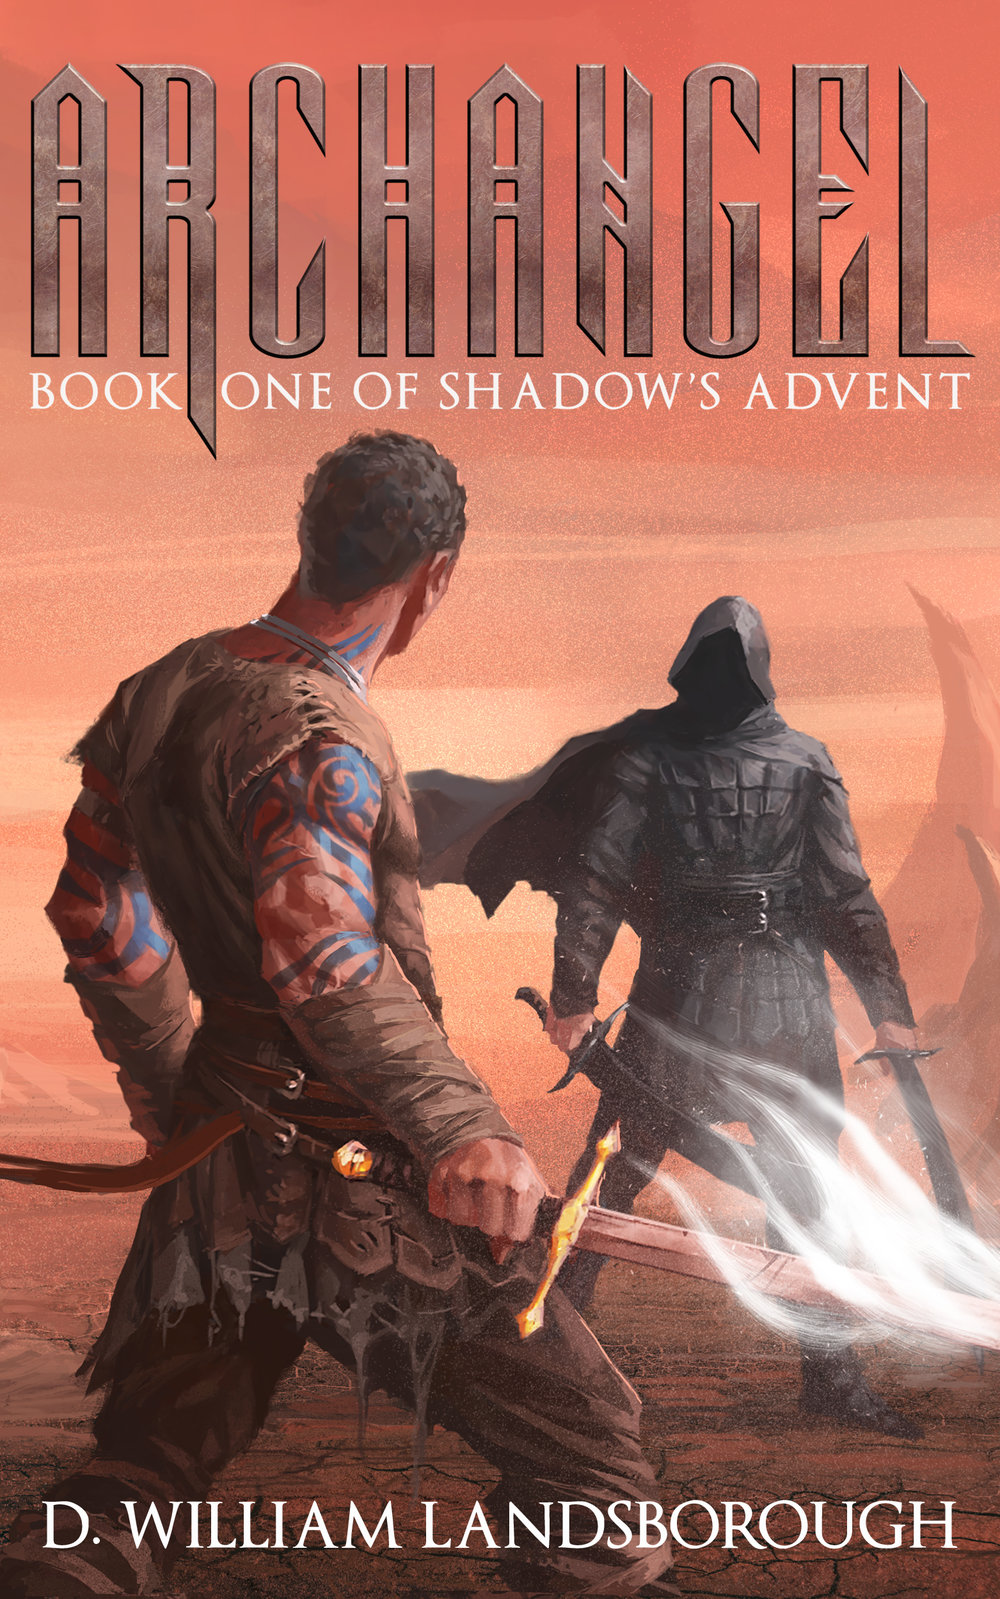 ARCHANGEL - E - BOOK COVER - FINAL.jpg